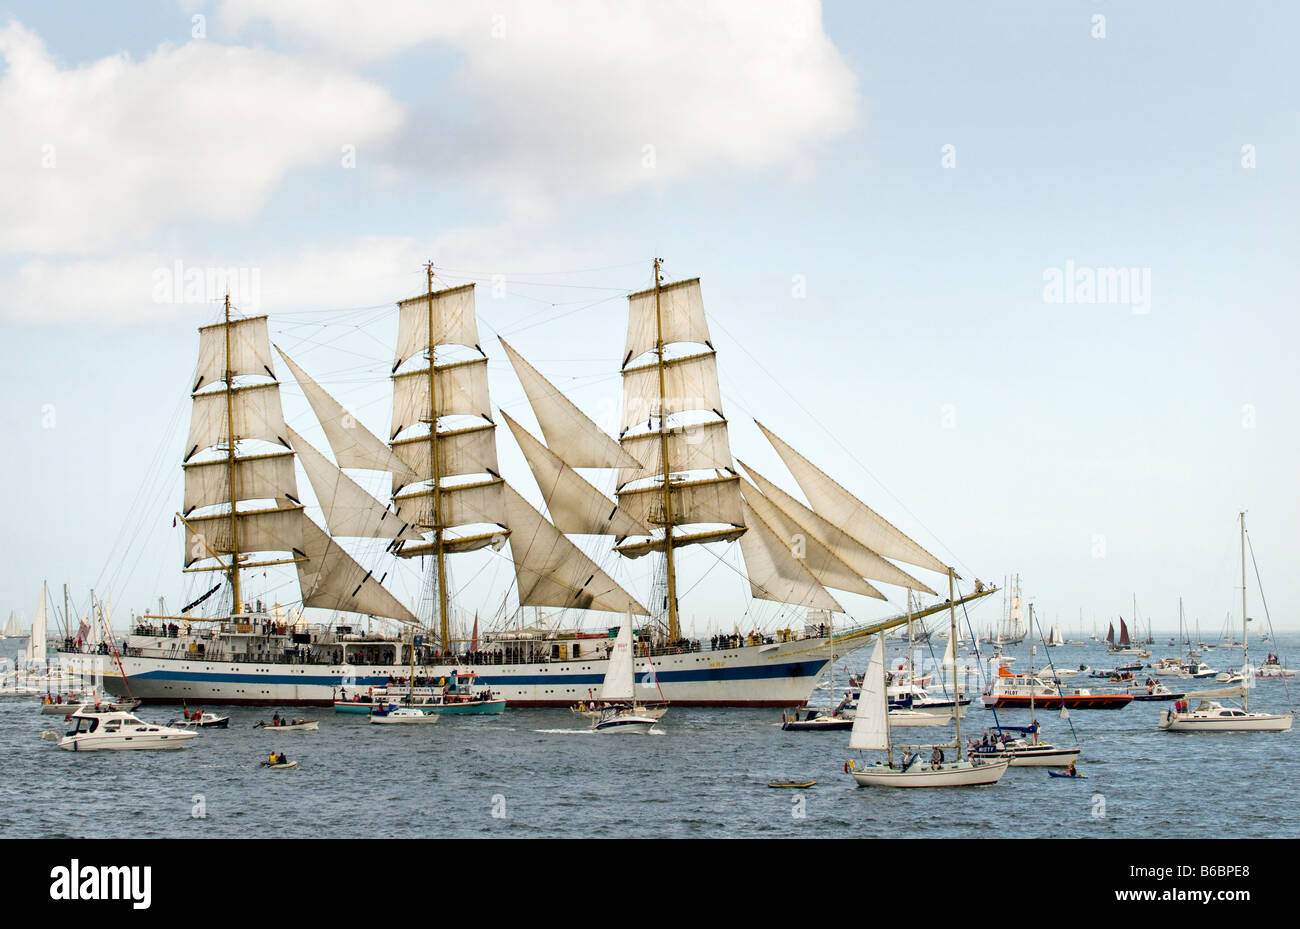 Russian Class A Tall Ship Mir surrounded by smaller ships during Funchal Tall Ships Regatta Falmouth Cornwall UK - Stock Image